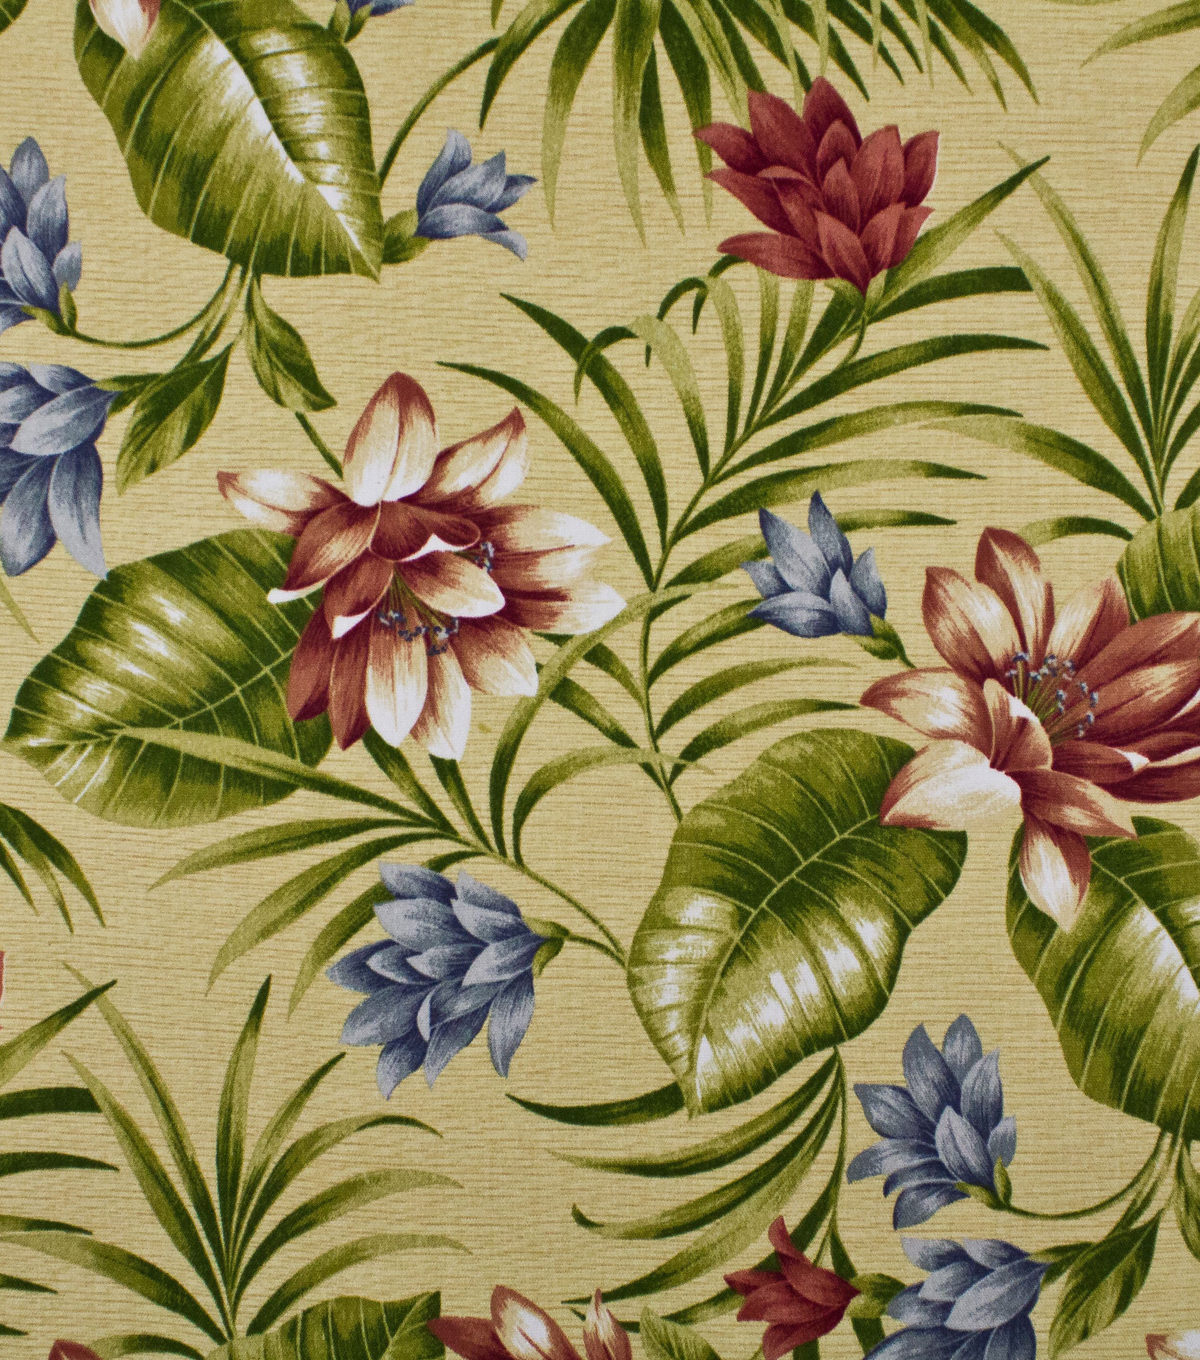 Home Decor Print Fabric 54\u0022 Solarium Siesta Key Garden